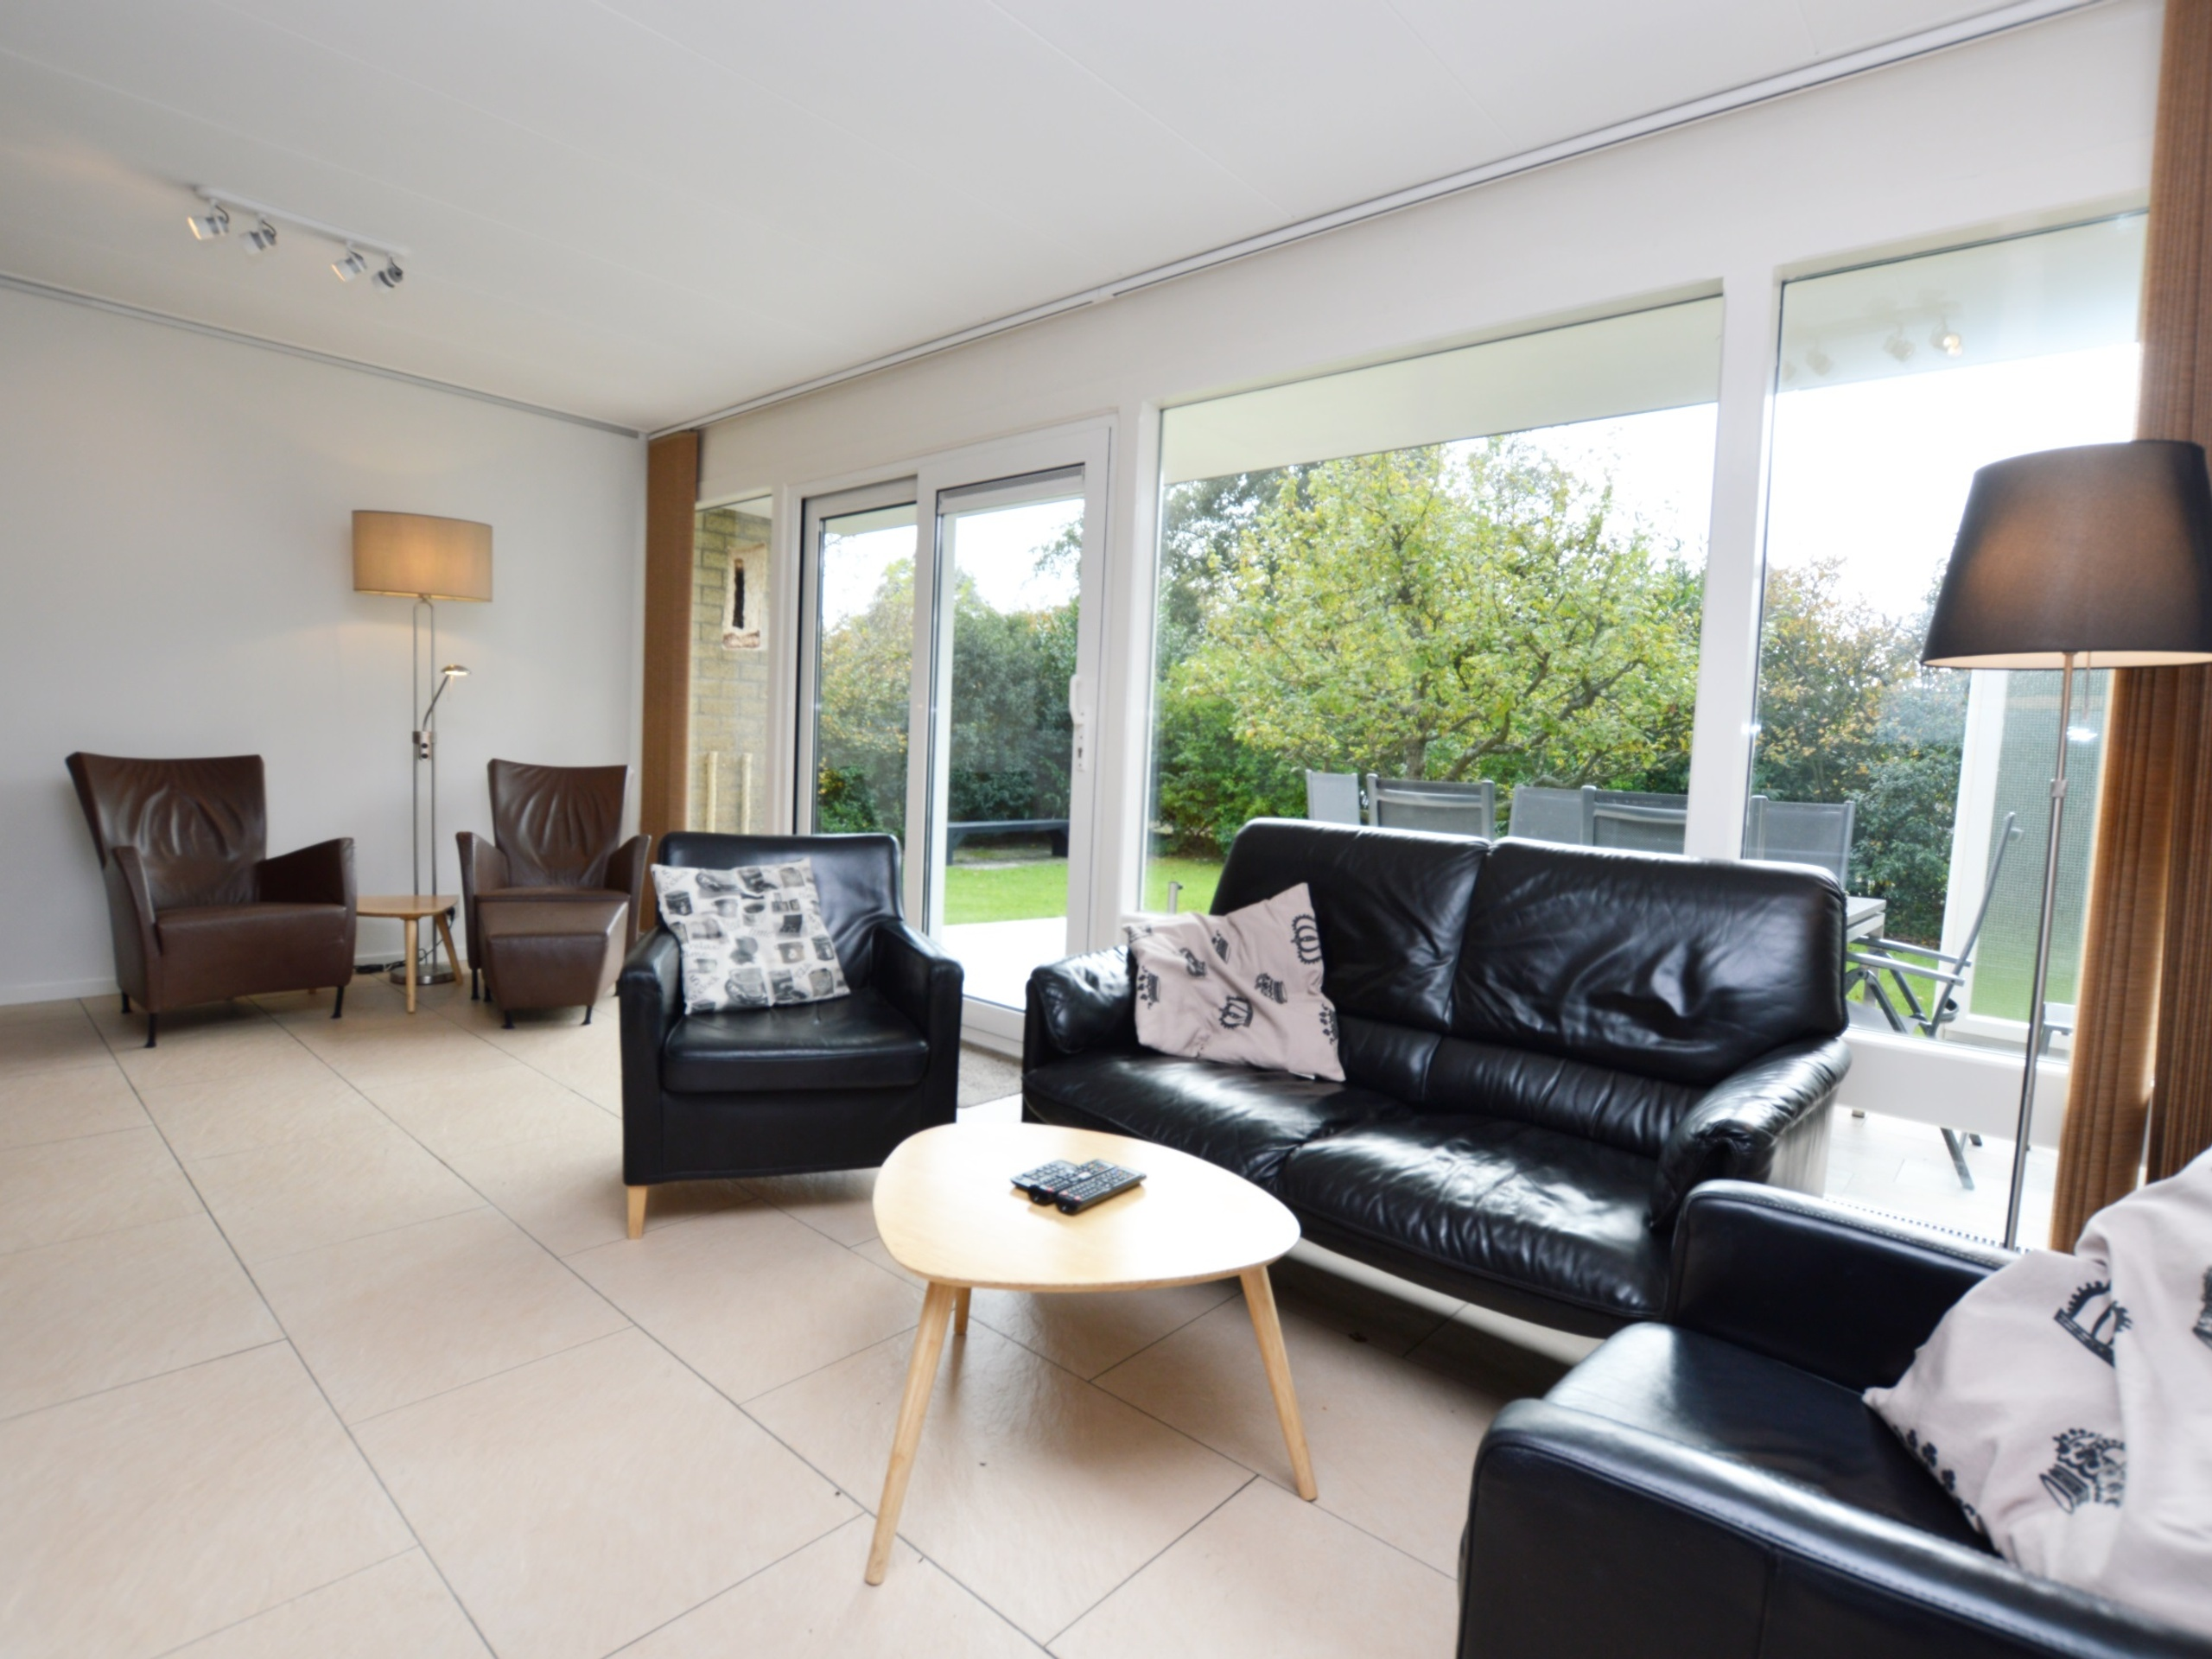 A comfortable, quiet bungalow in a beautiful location